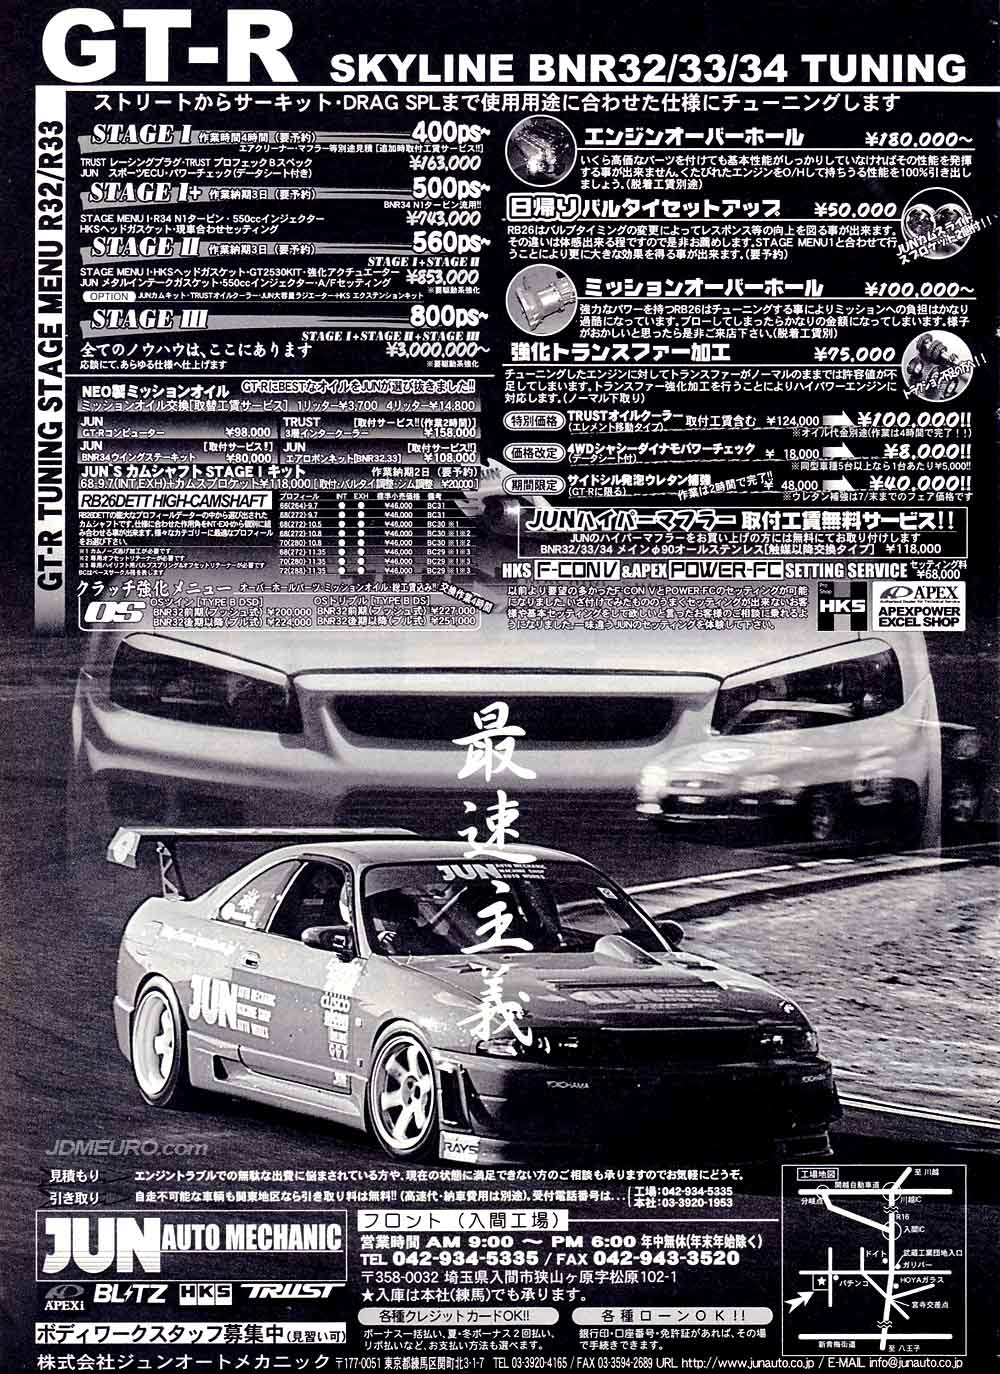 JUN Auto is one of Japans Premier Tuners. One of the cars JUN Auto specializes in is the Nissan Skyline. This advertisement outlines some of the product and services JUN Auto had for the R32 R33 and R34 Nissan Skyline GTR series. Pictured is a Nissan Skyline GTR R33 on Volk Racing TE37 Wheels.